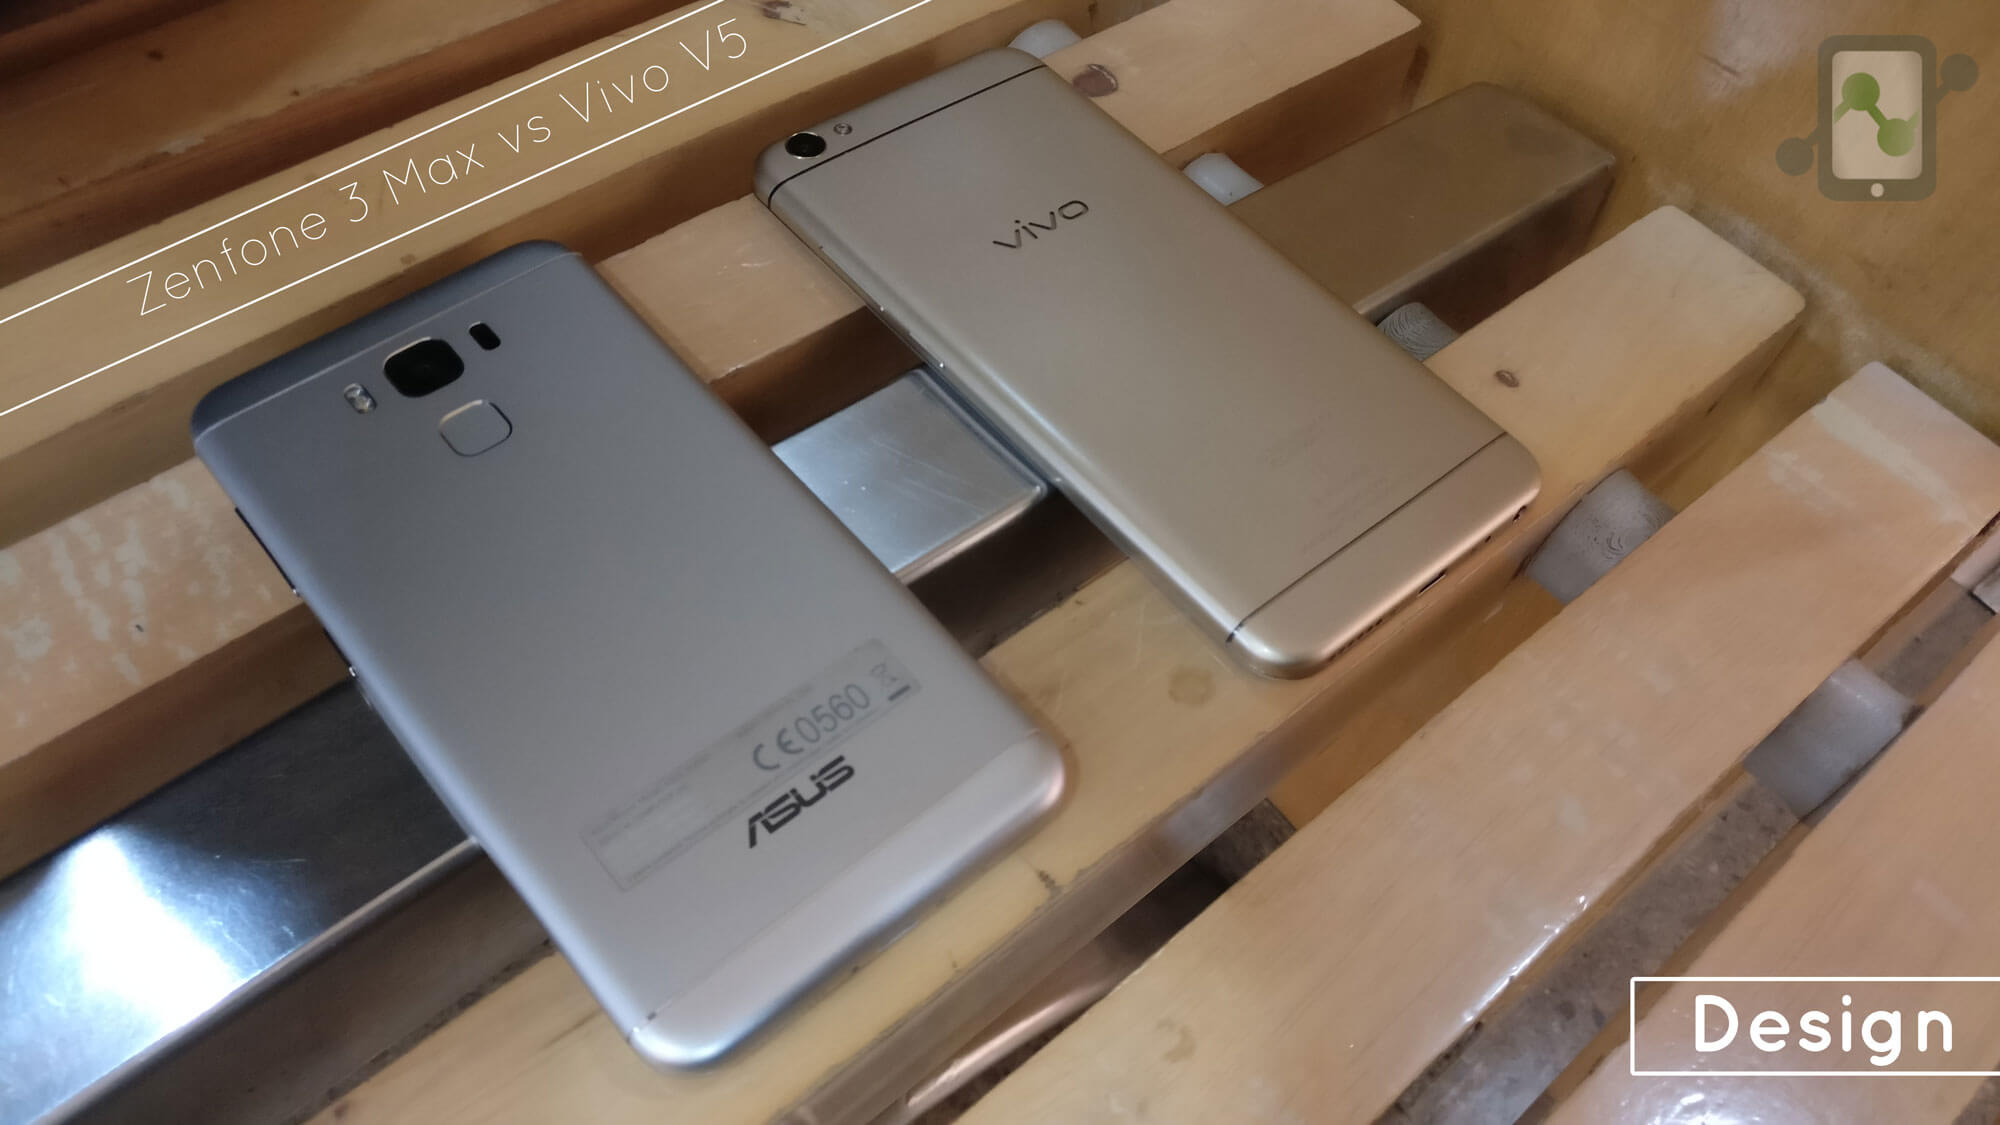 Asus Zenfone 3 Max vs Vivo V5 Design Review